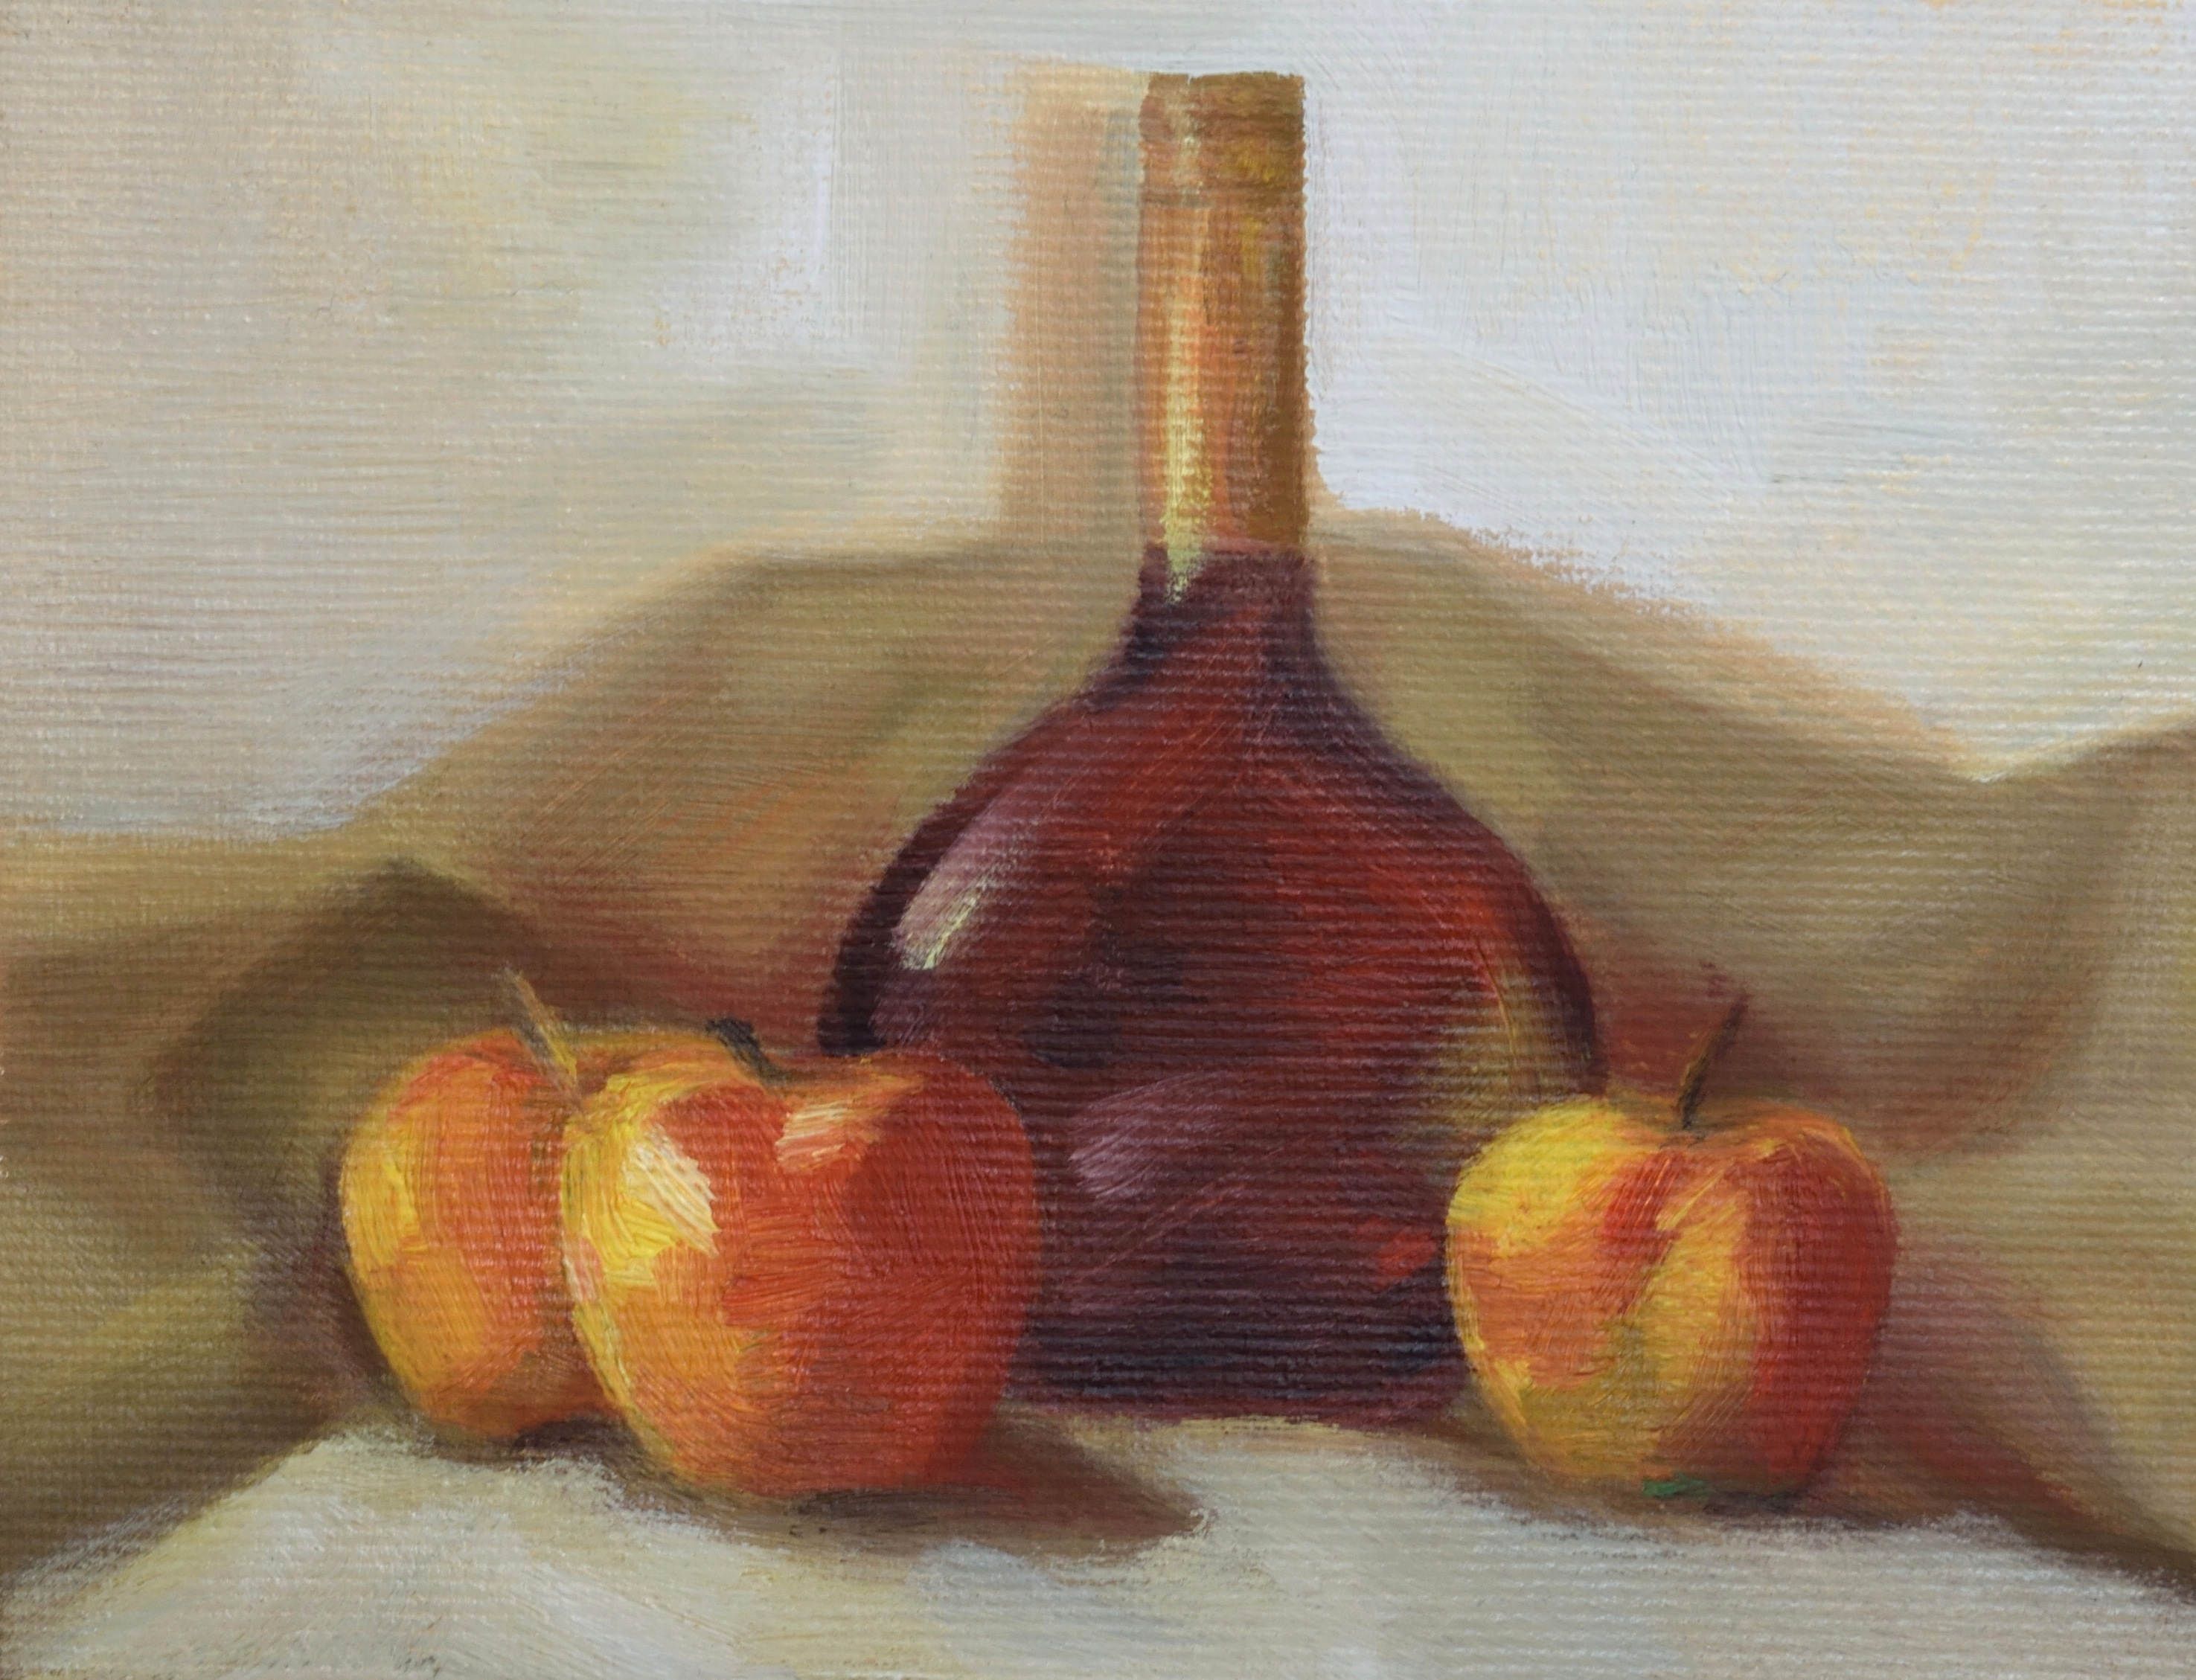 Apples and wine, oil on canvas, 20 x 30 cm, 2017